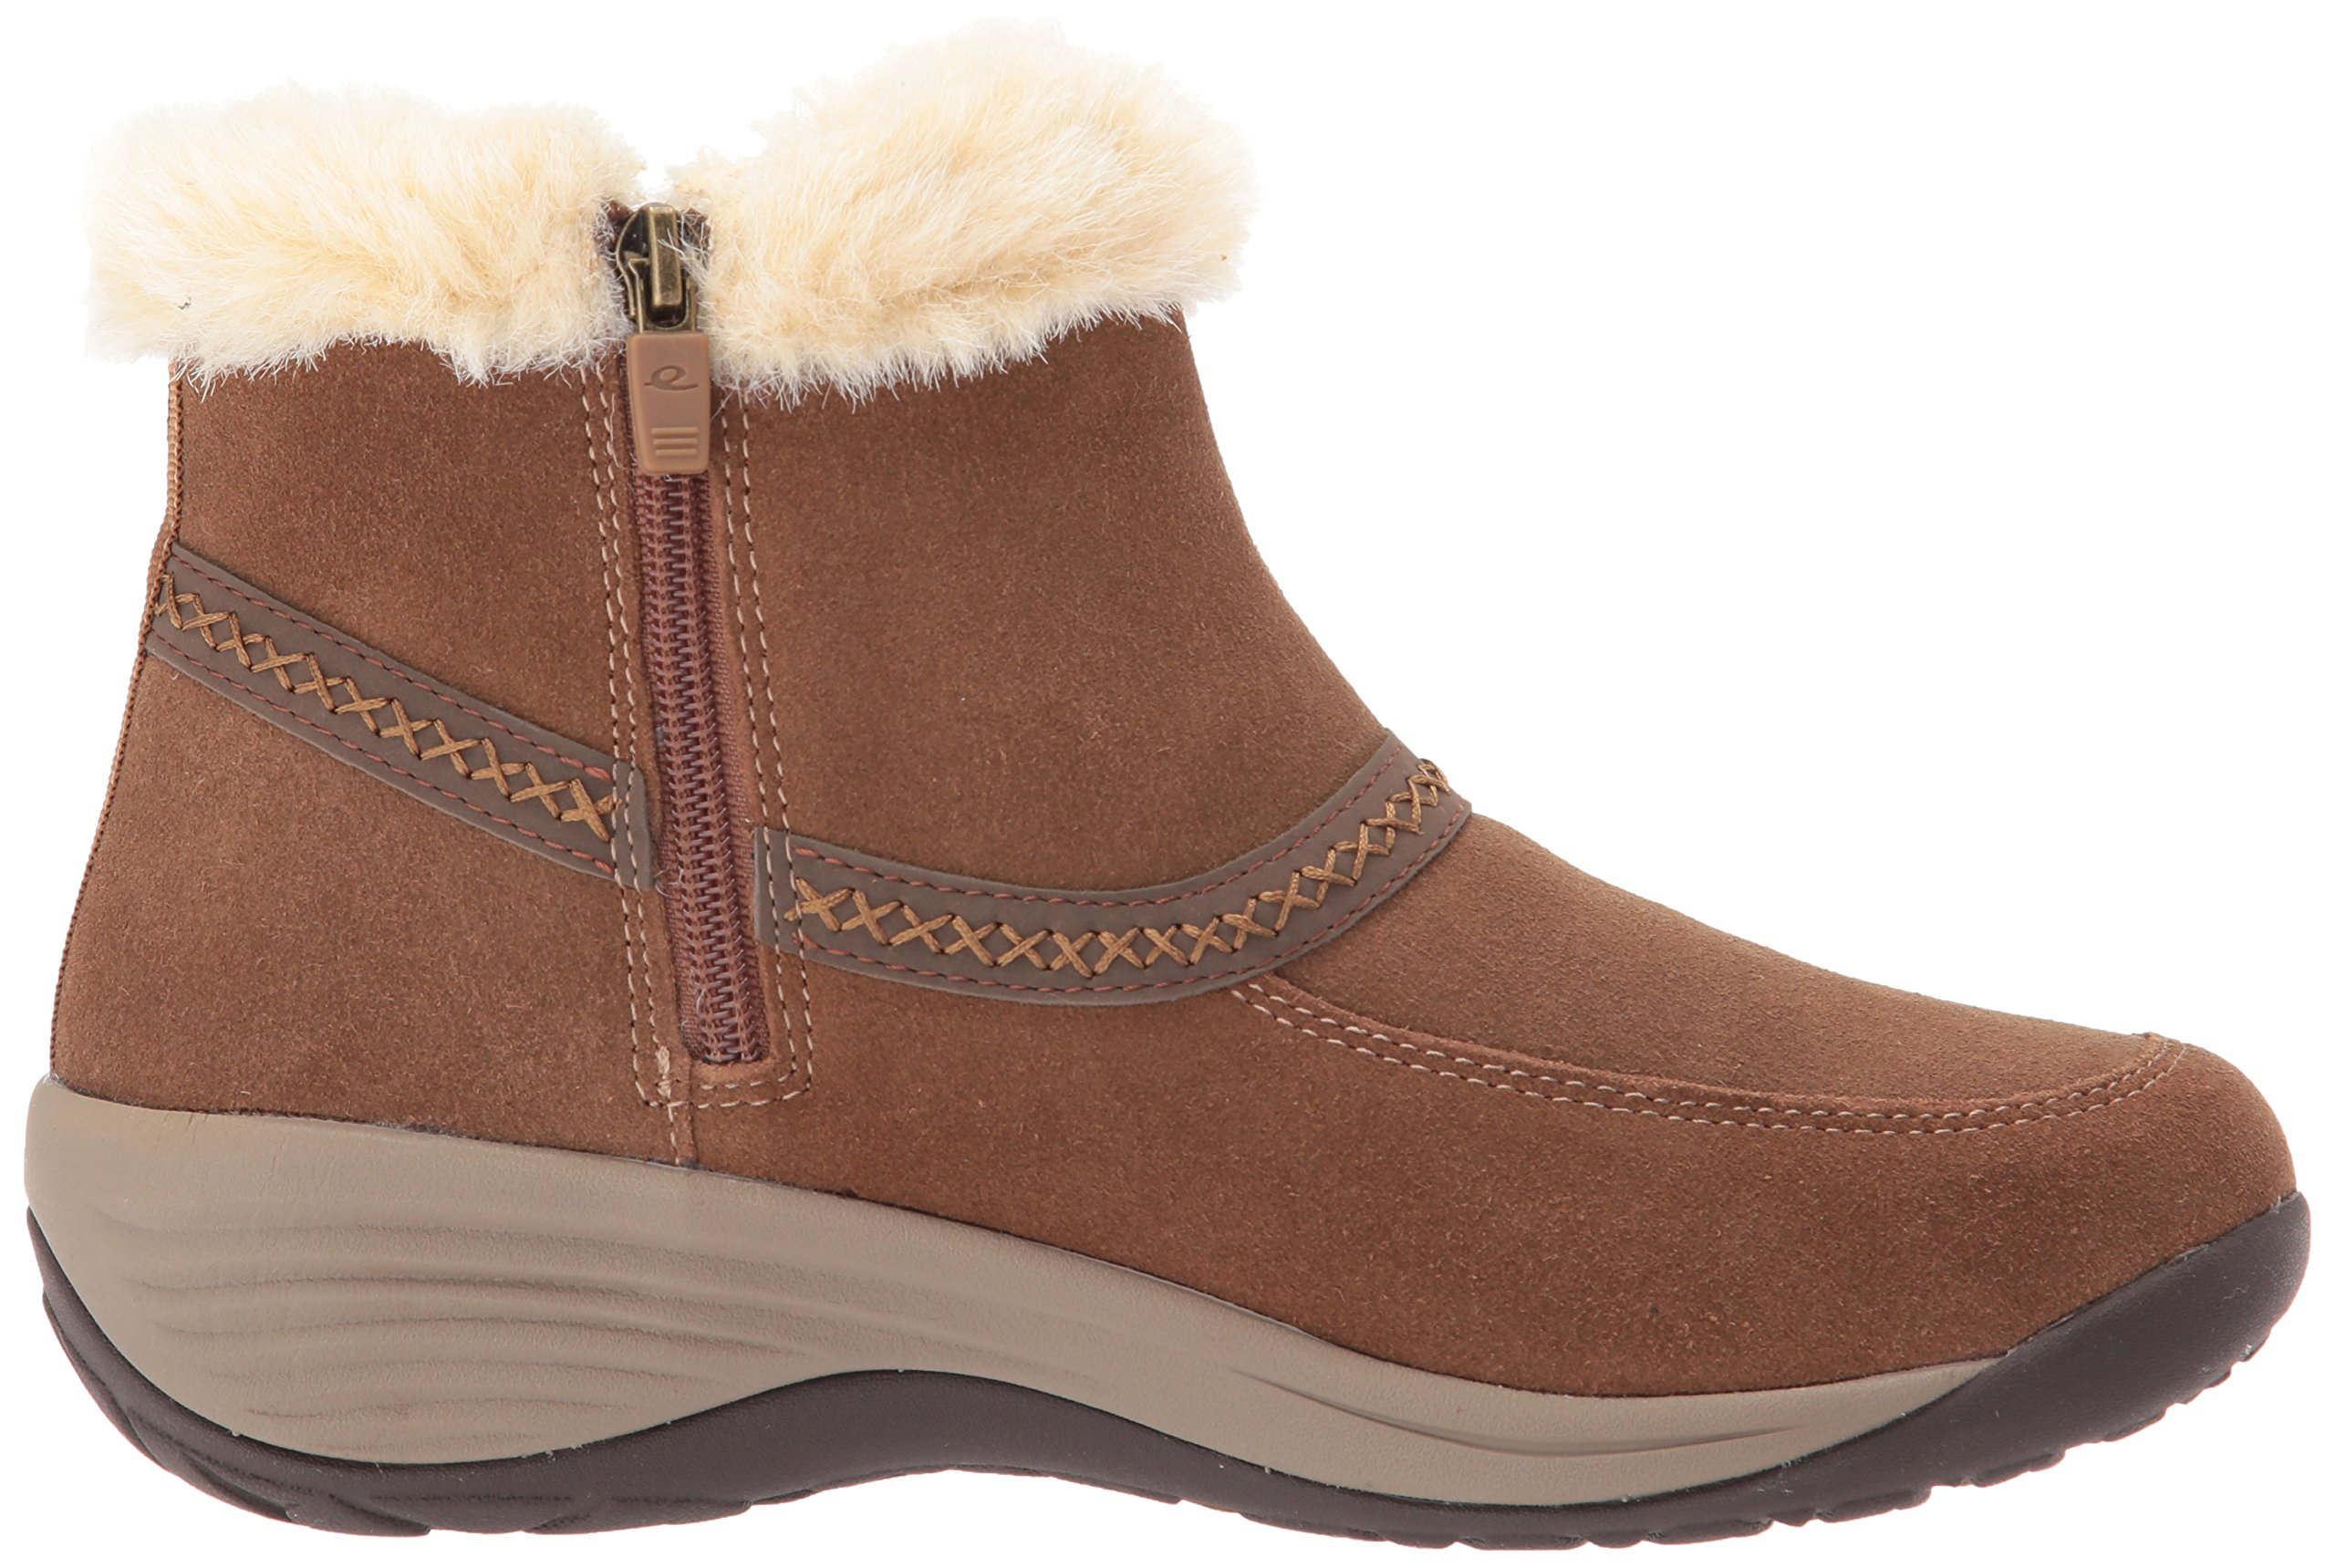 Easy Spirit Women's Icerink Ankle Bootie, Dark Natural Multi Suede, 6 W US by Easy Spirit (Image #7)